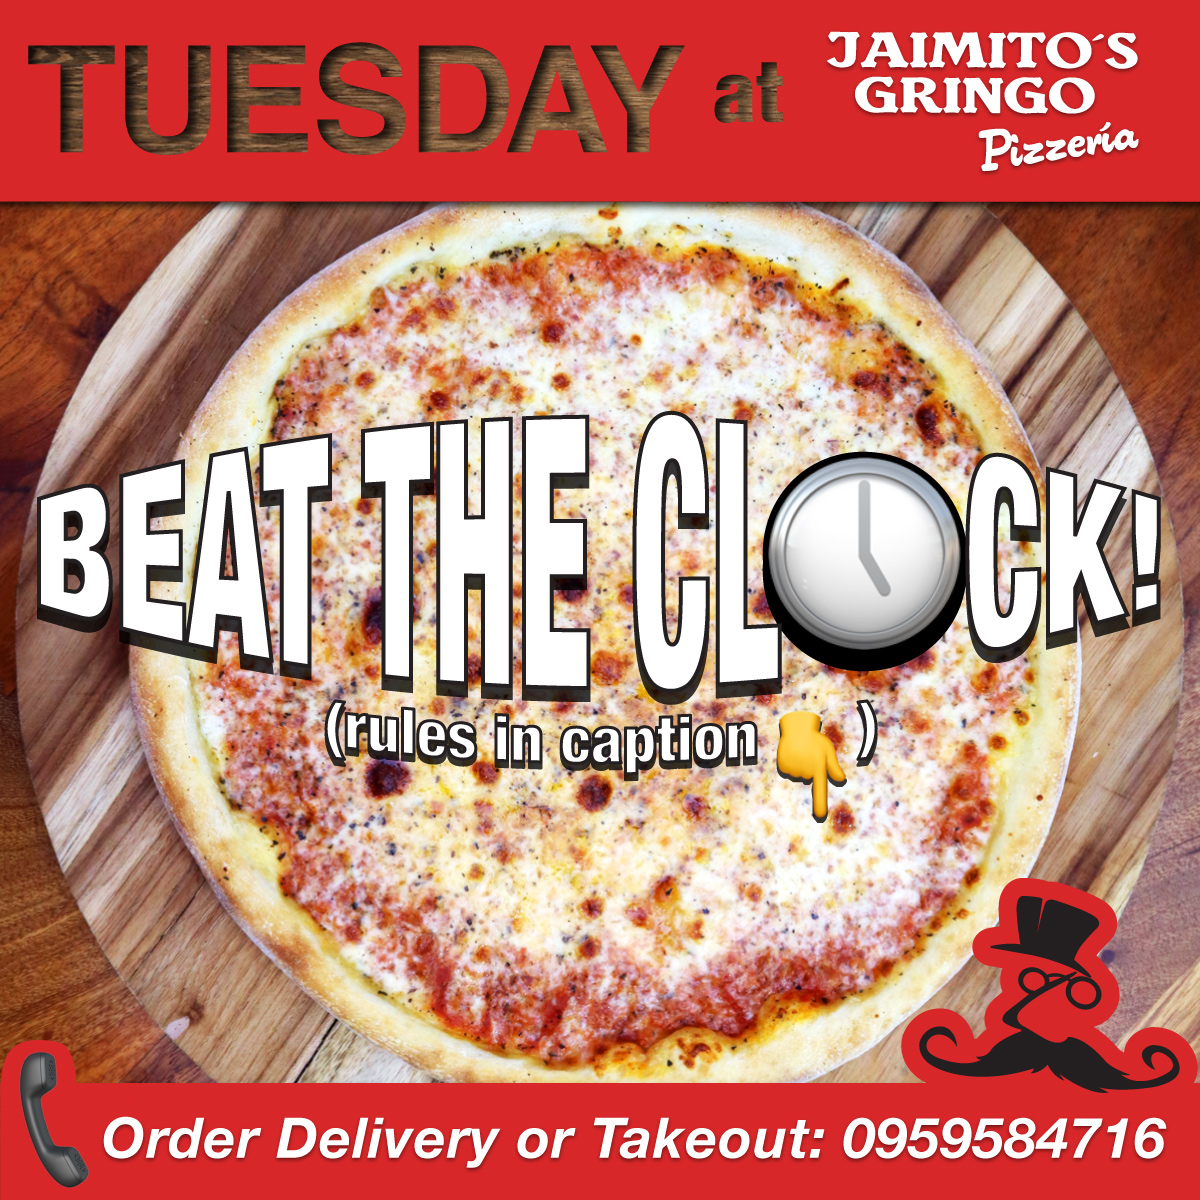 Jaimitos-tuesday-promo-EN.jpg